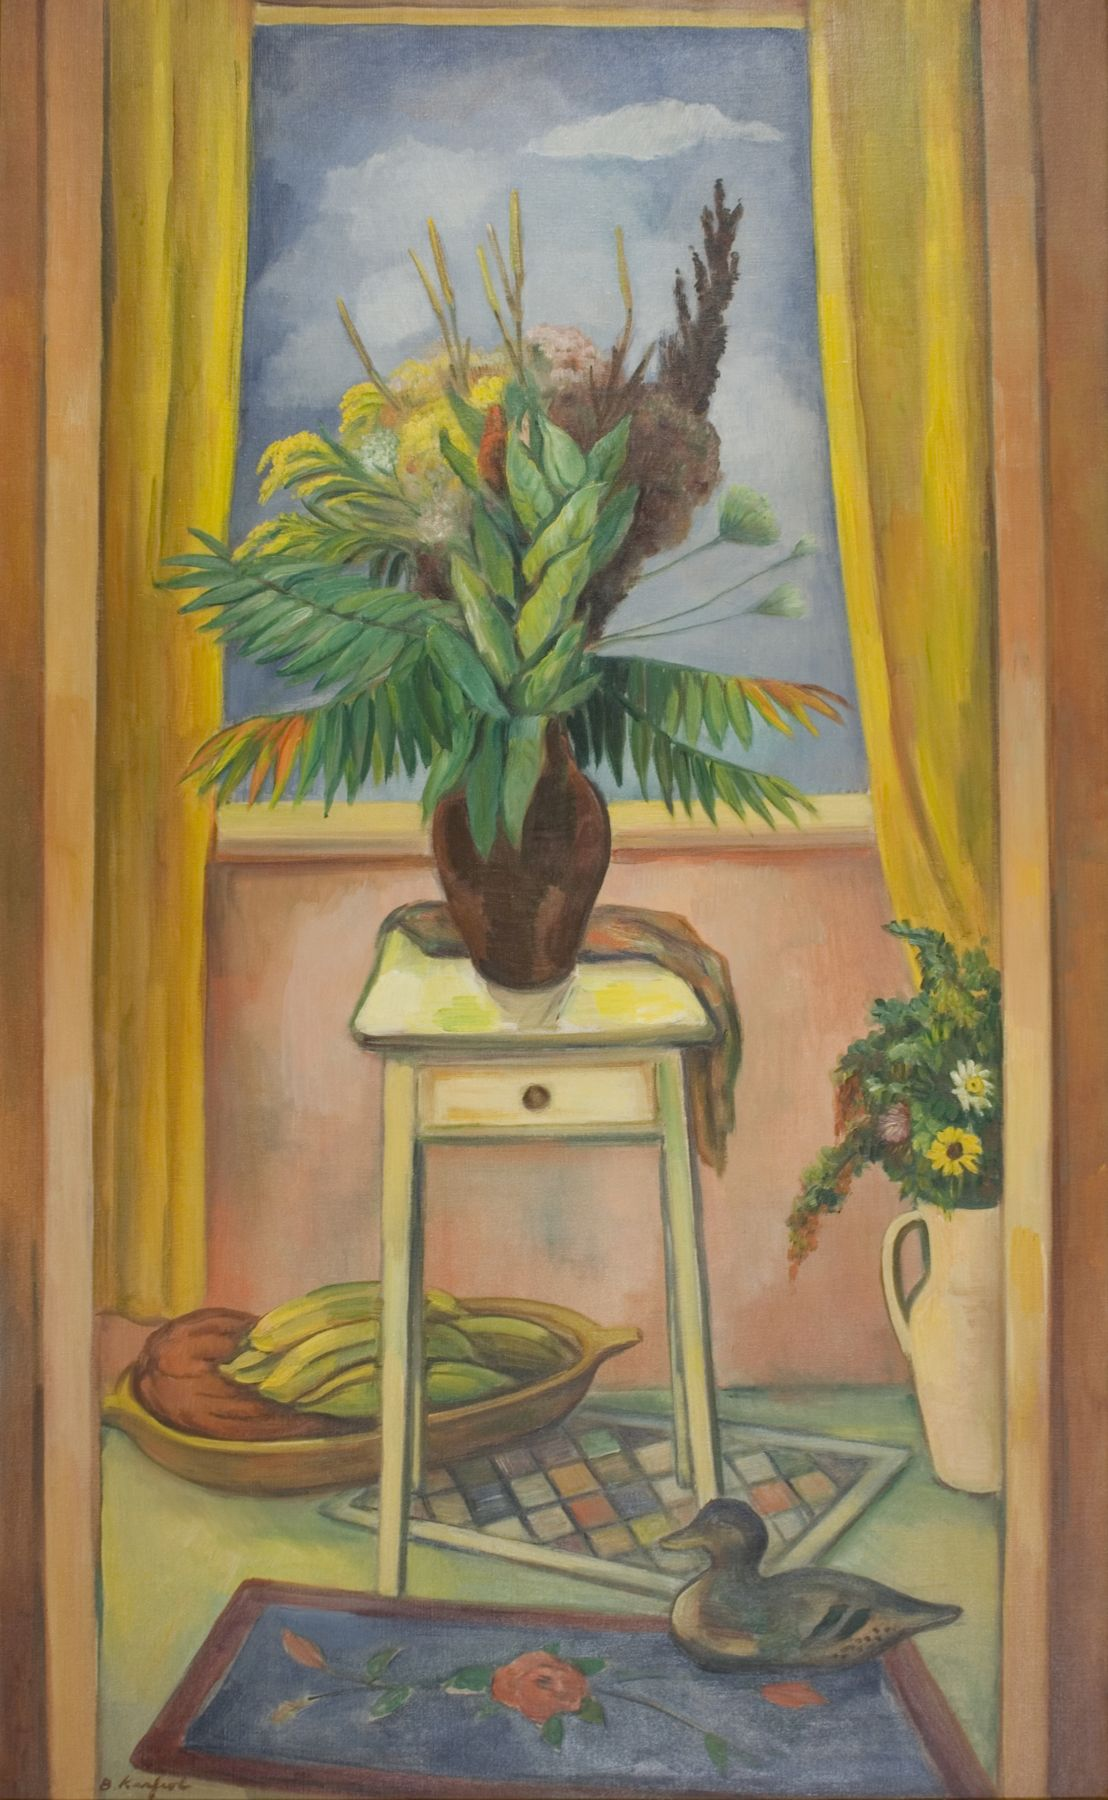 bernard karfiol, Still-life with Milkweed and Wild Stuff, 1947, oil on canvas, 50 x 30 inches